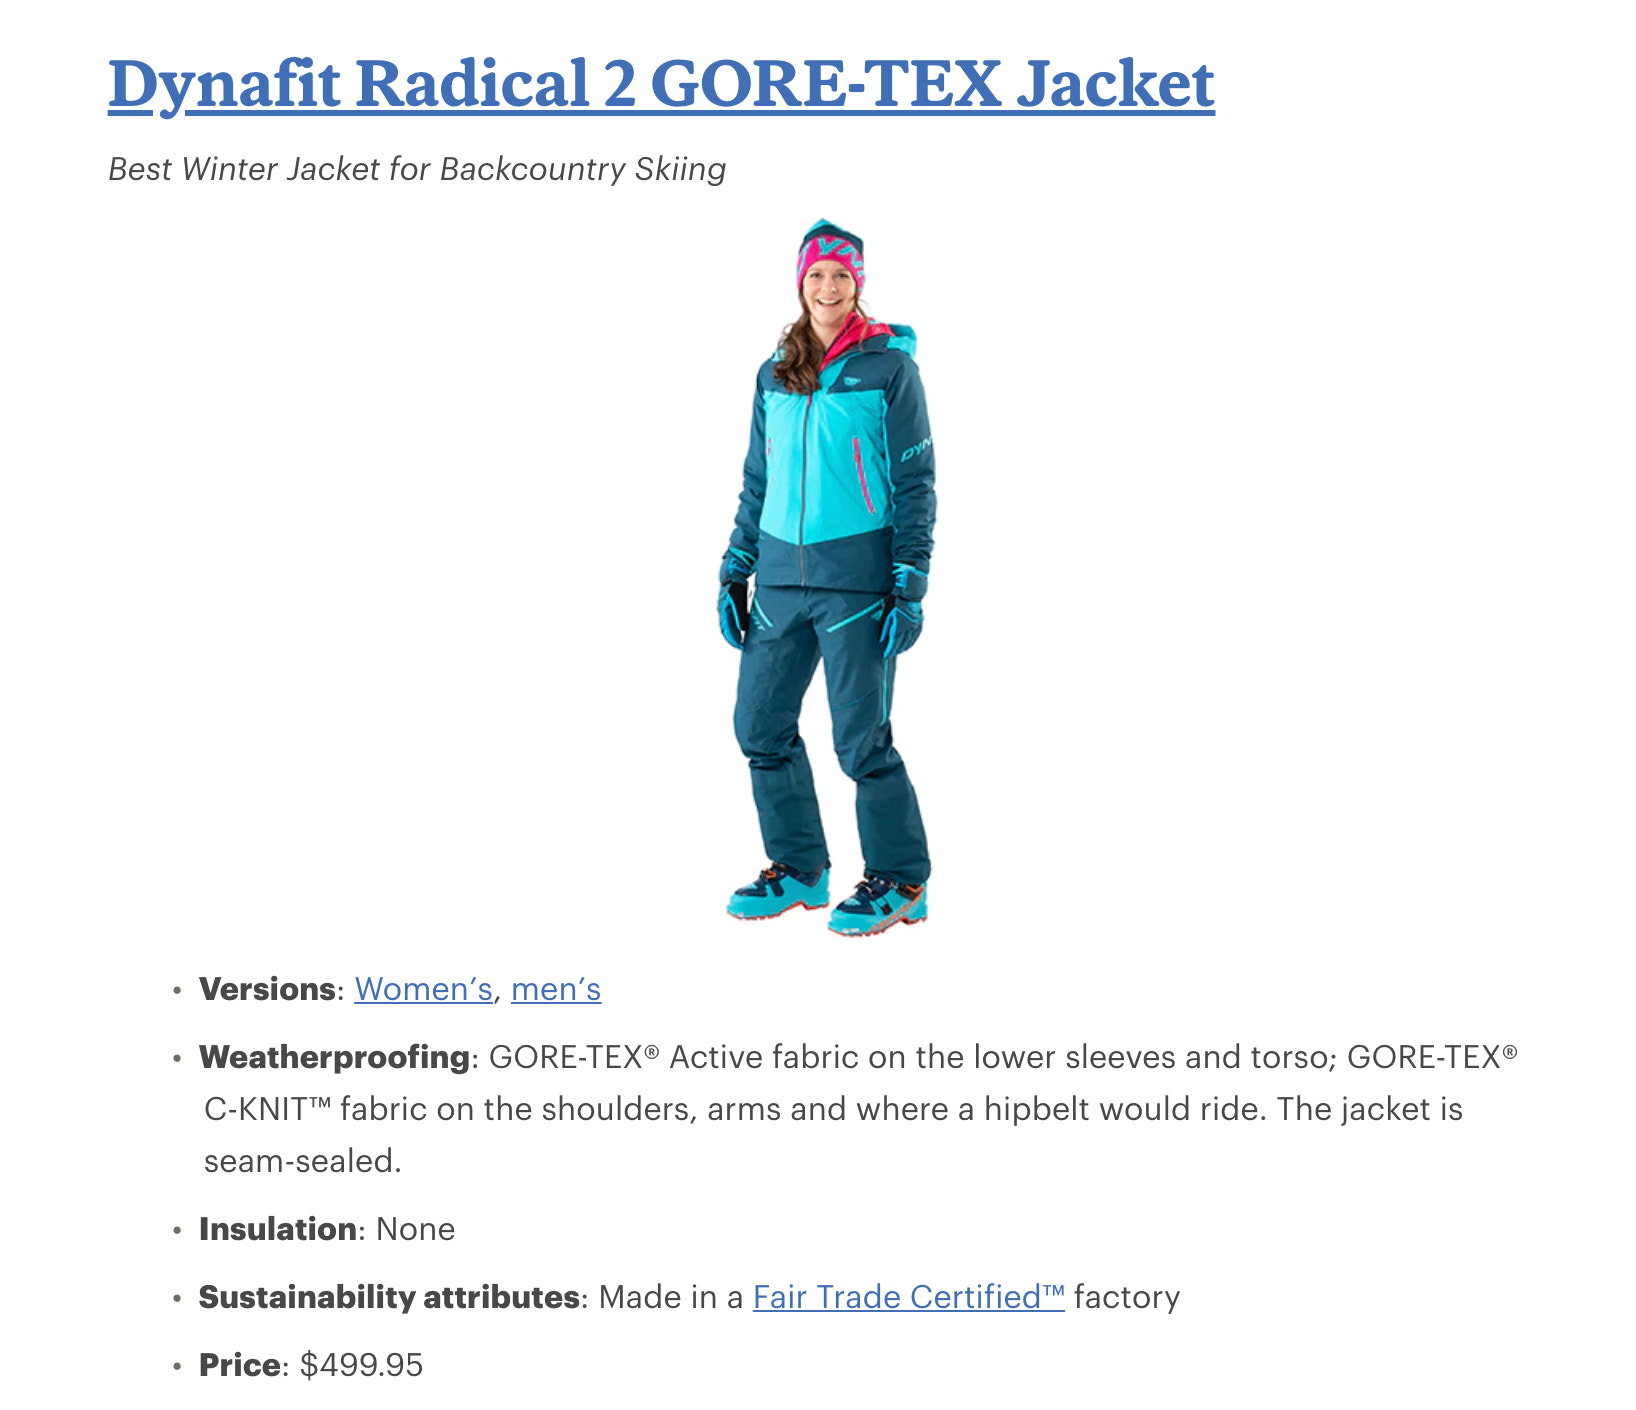 buyers guide cta example 2